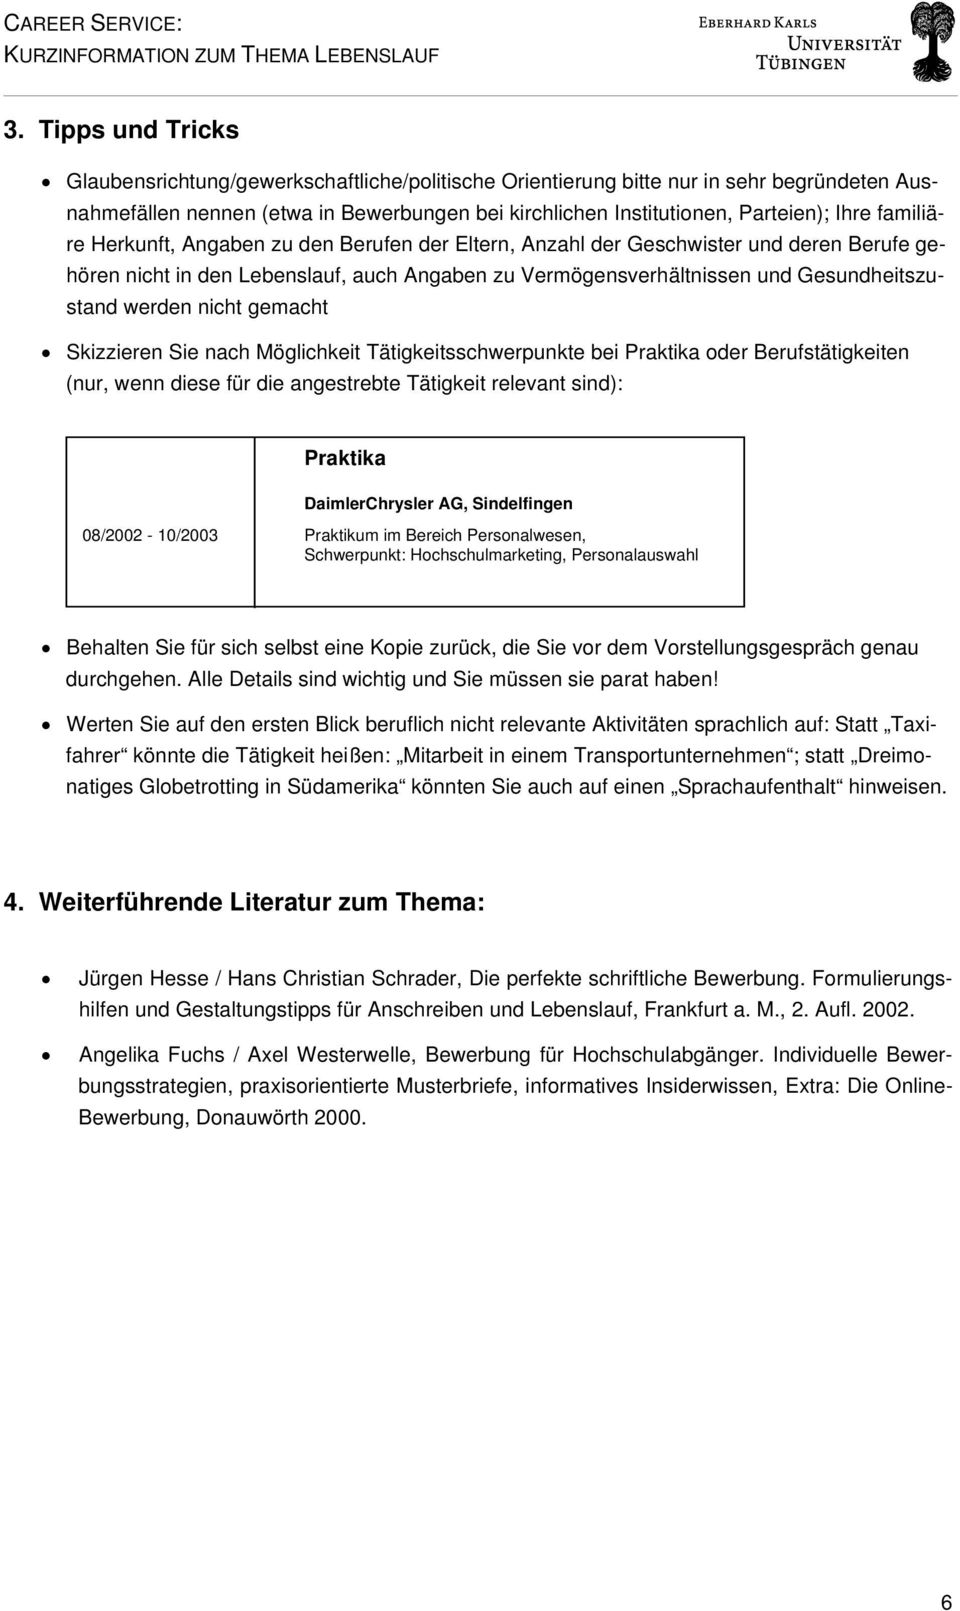 Gemütlich Armee Offizier Lebenslauf Bilder - Entry Level Resume ...